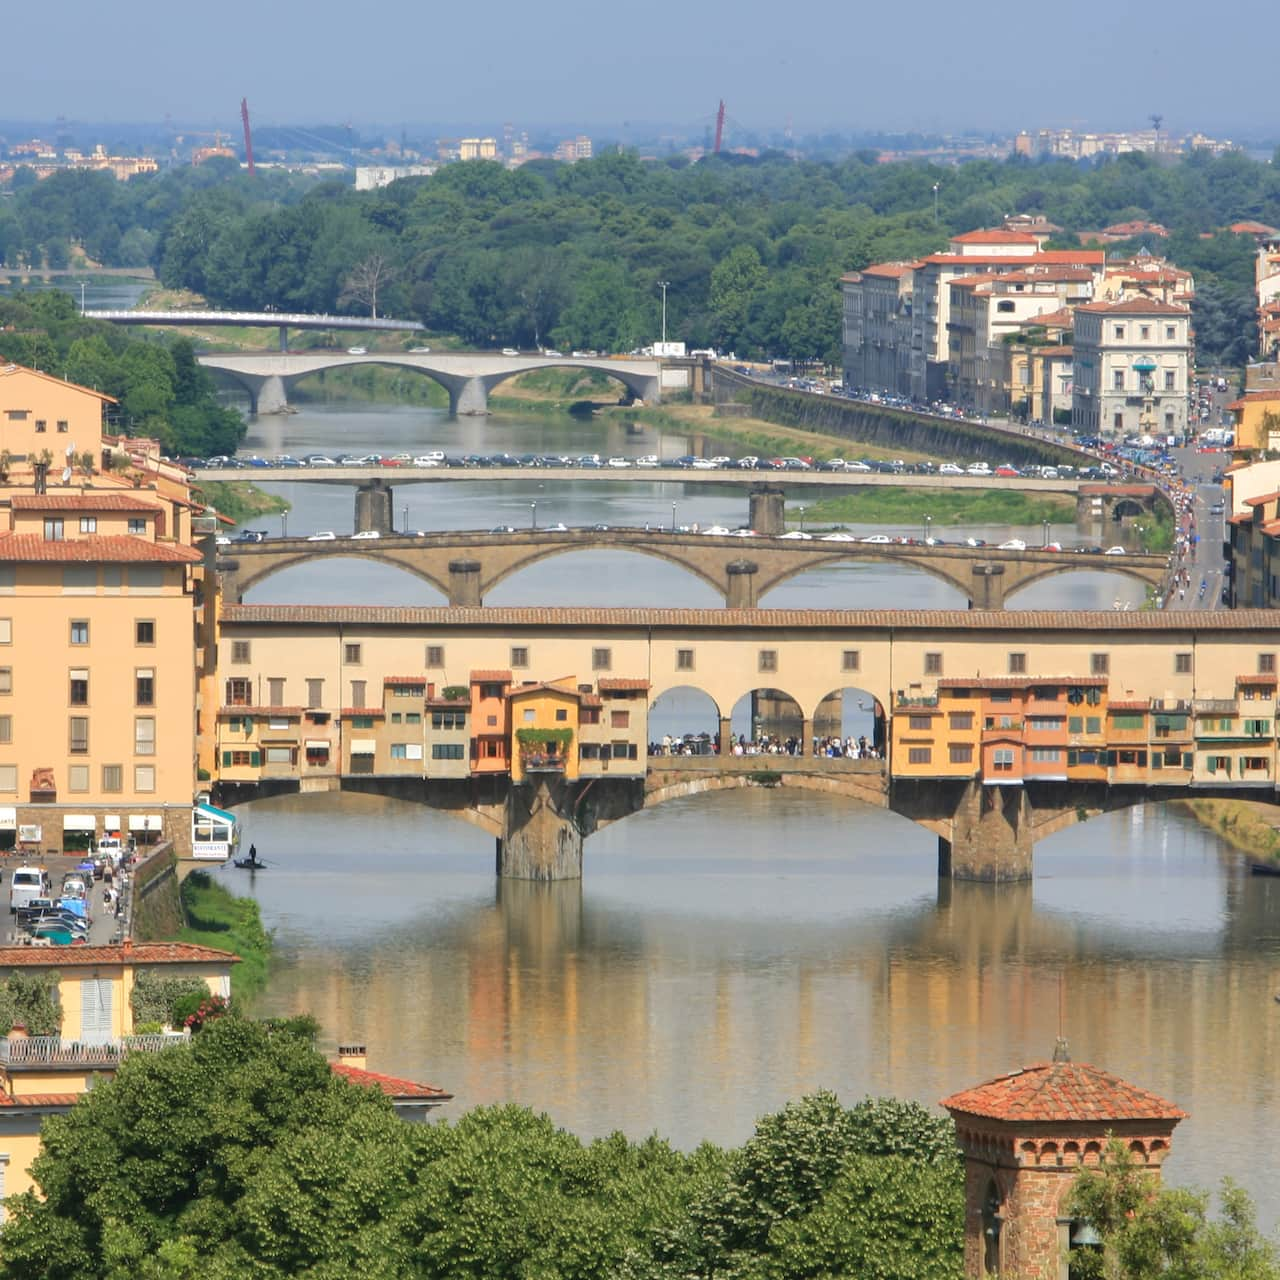 The Ponte Vecchio Bridge spans the Arno River along with several other bridges behind it